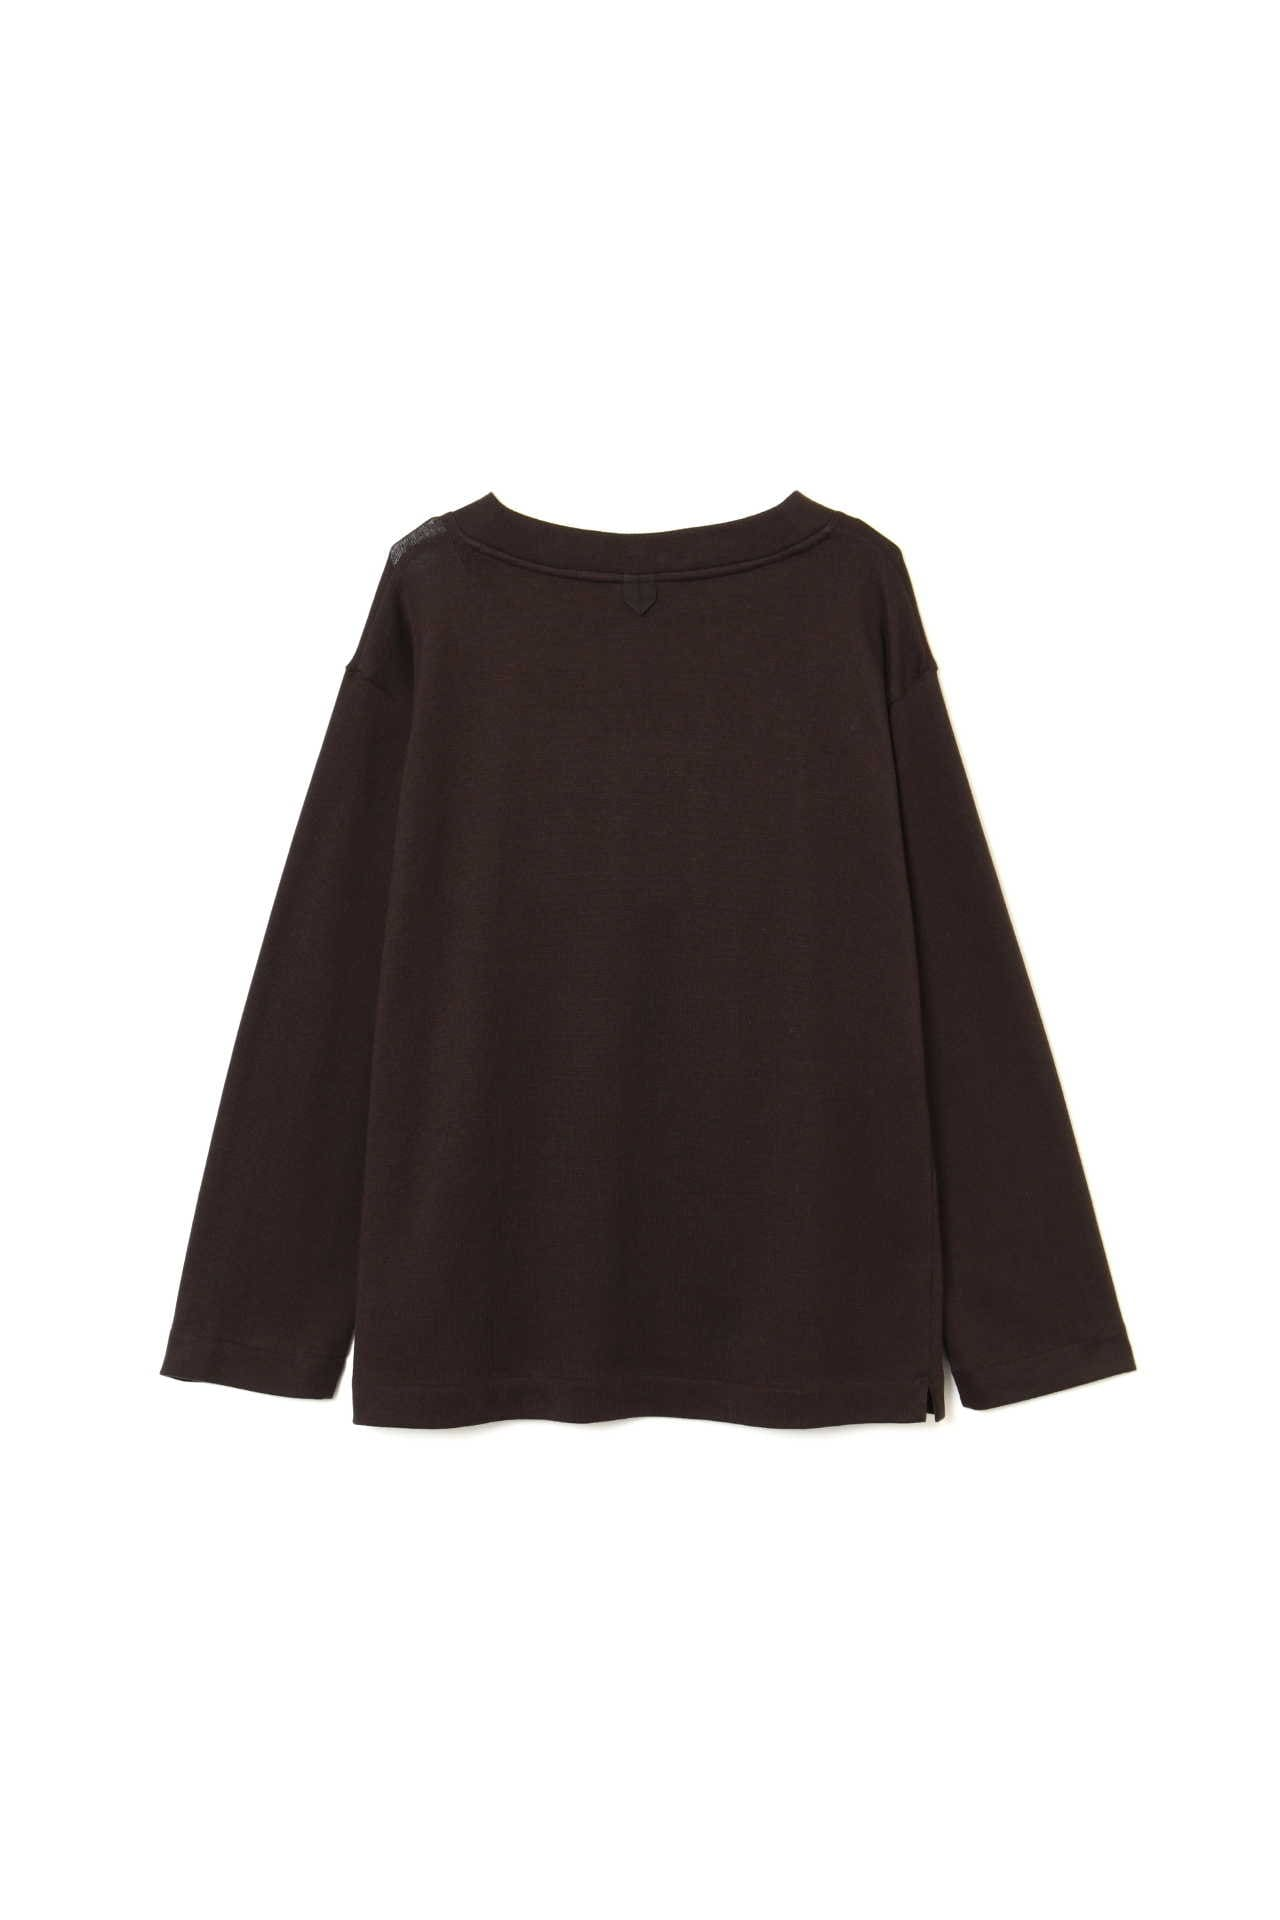 WARM COTTON CASHMERE JERSEY8